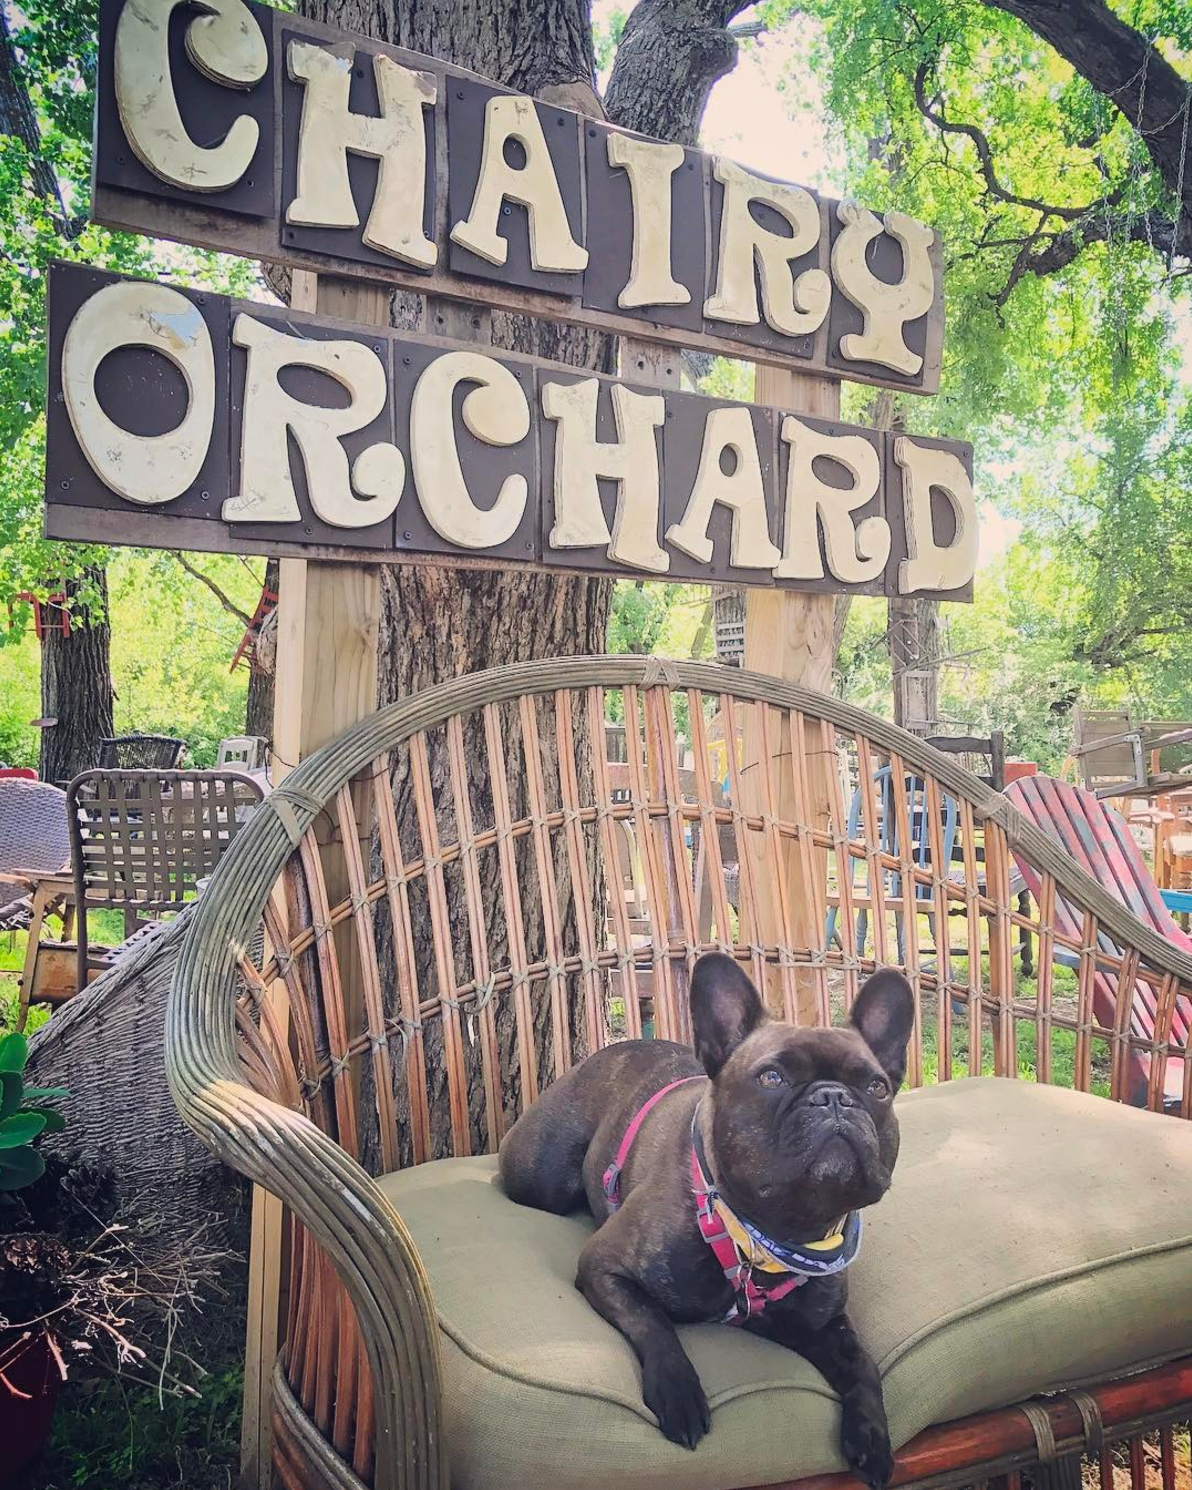 Mona at The Chairy Orchard. Photo by @theryancole87.